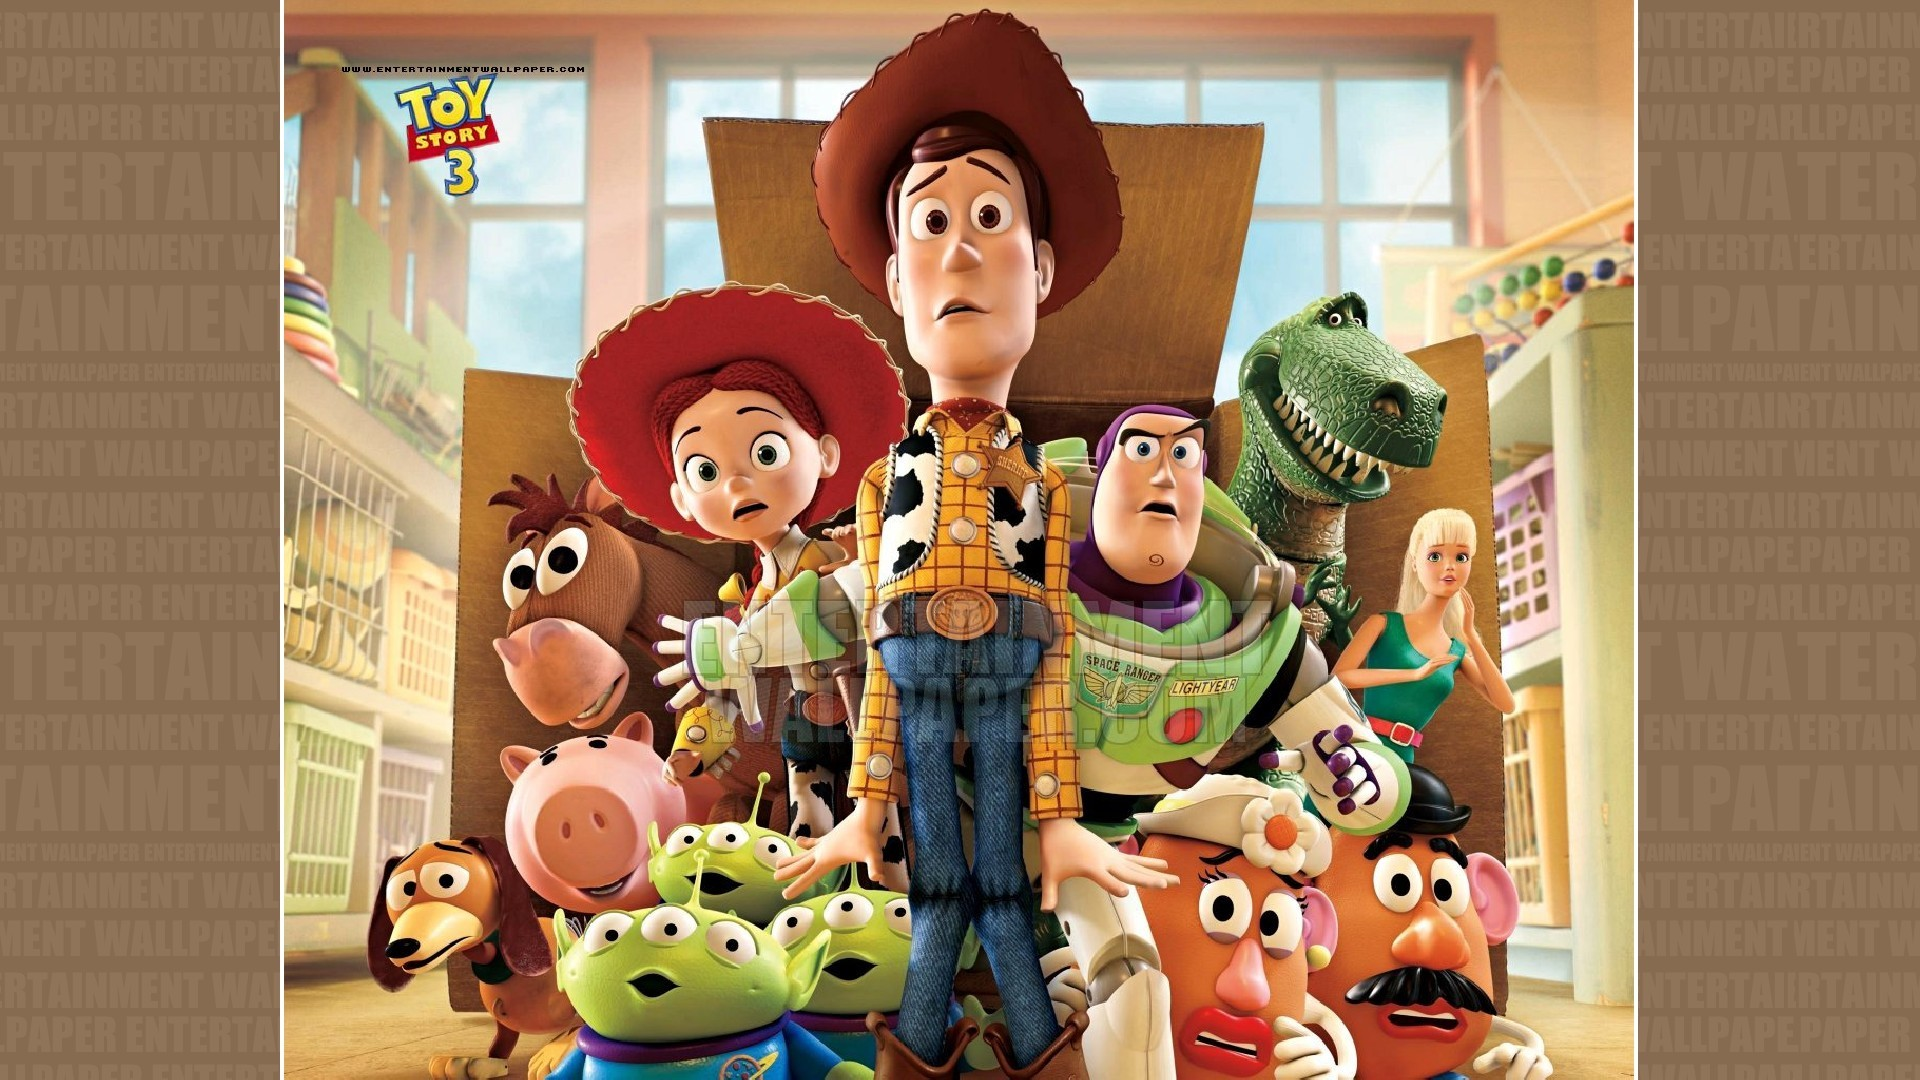 1920x1080 Toy Story 3 Wallpaper - Original size, download now.